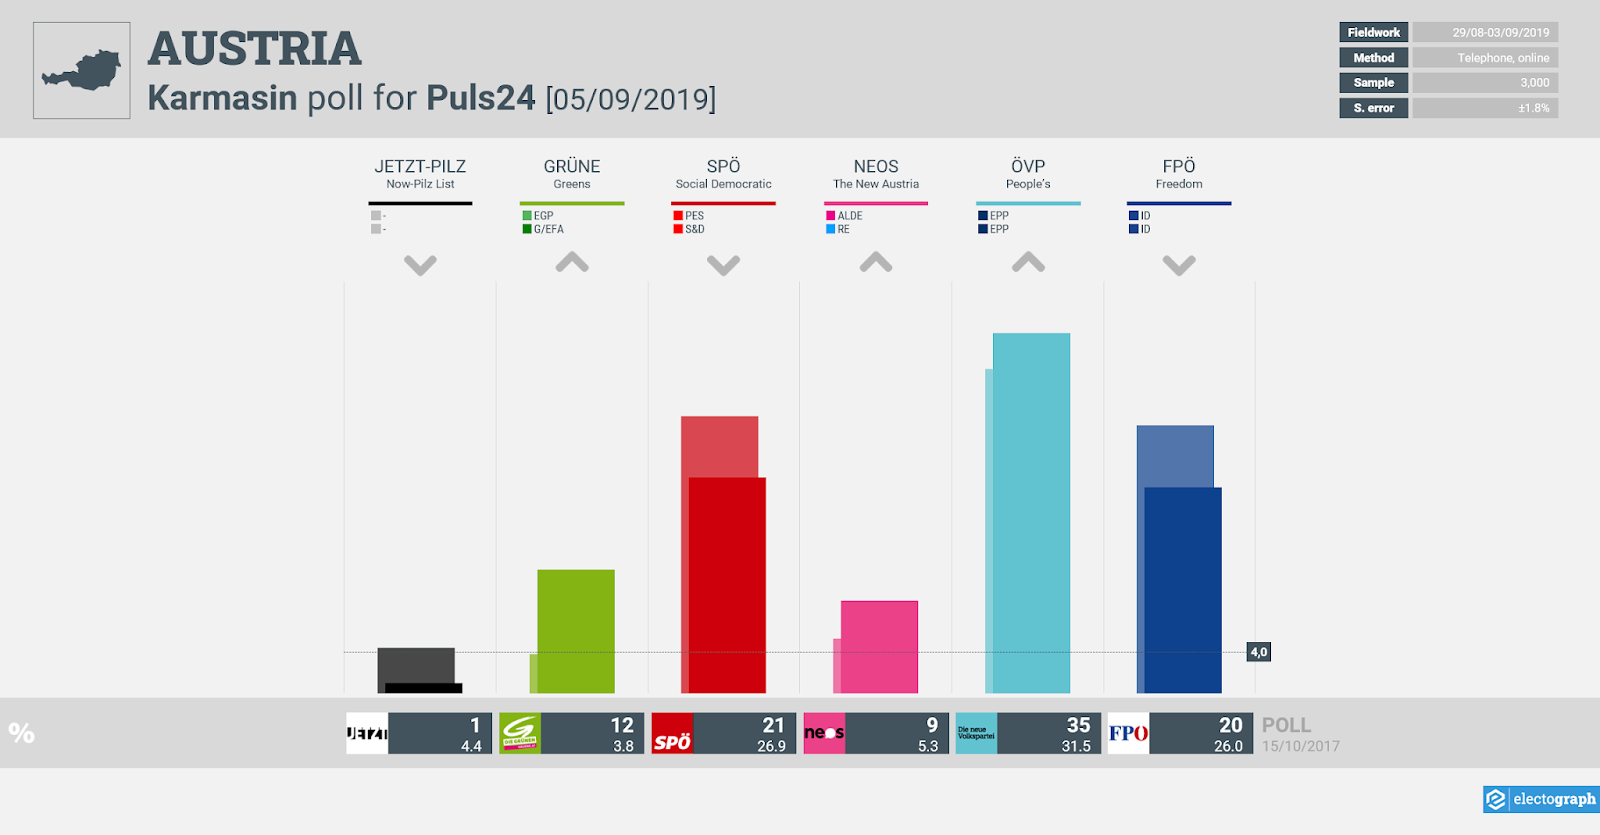 AUSTRIA: Karmasin poll chart for Puls24, 5 September 2019